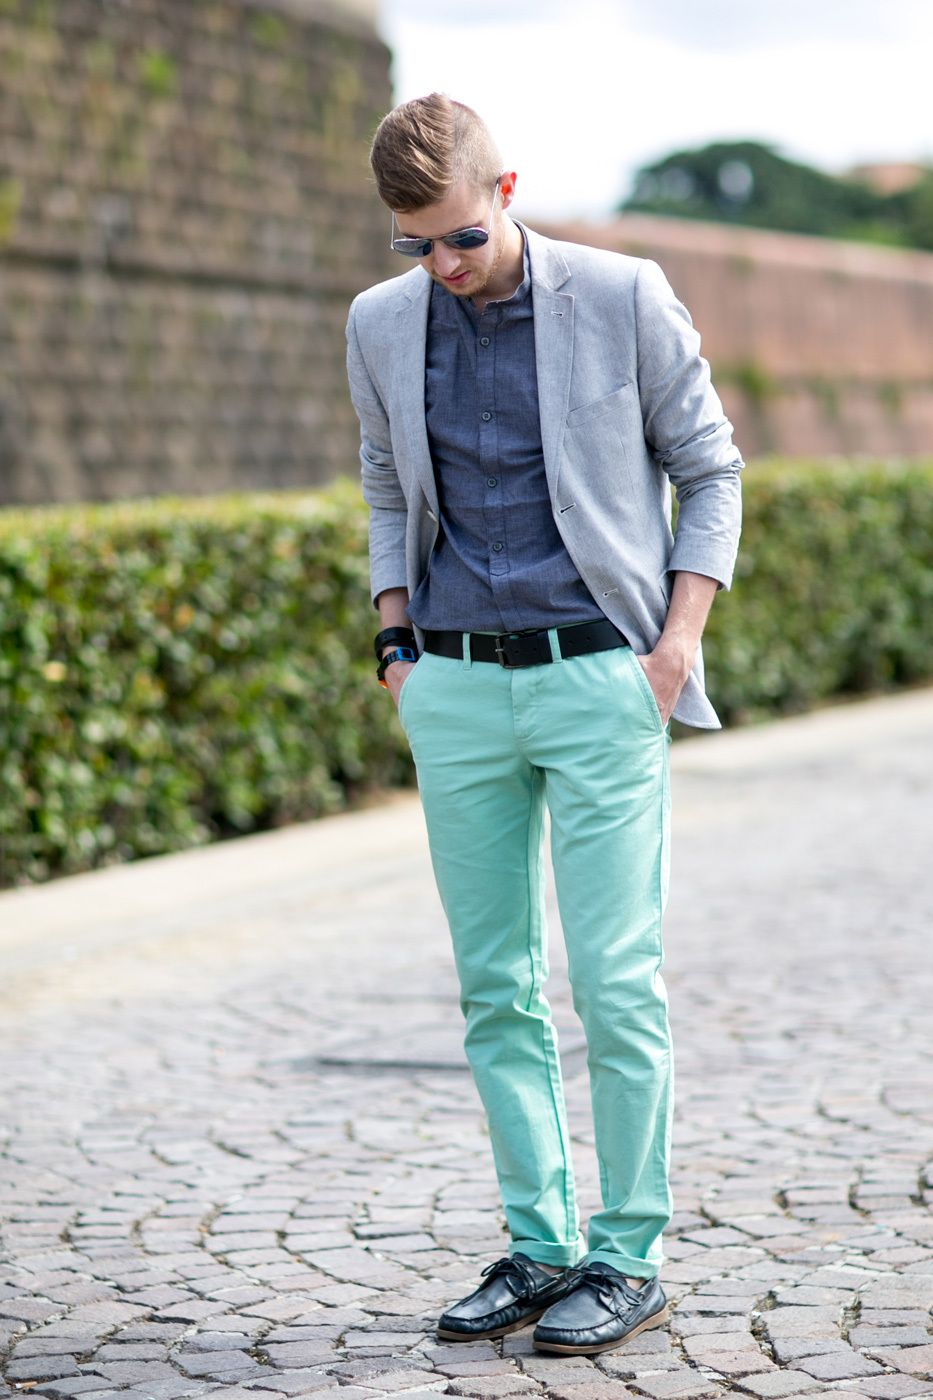 4e4993f5c2ea Mint Pant Outfits for Men – 30 Ideas How to Wear Mint Pants